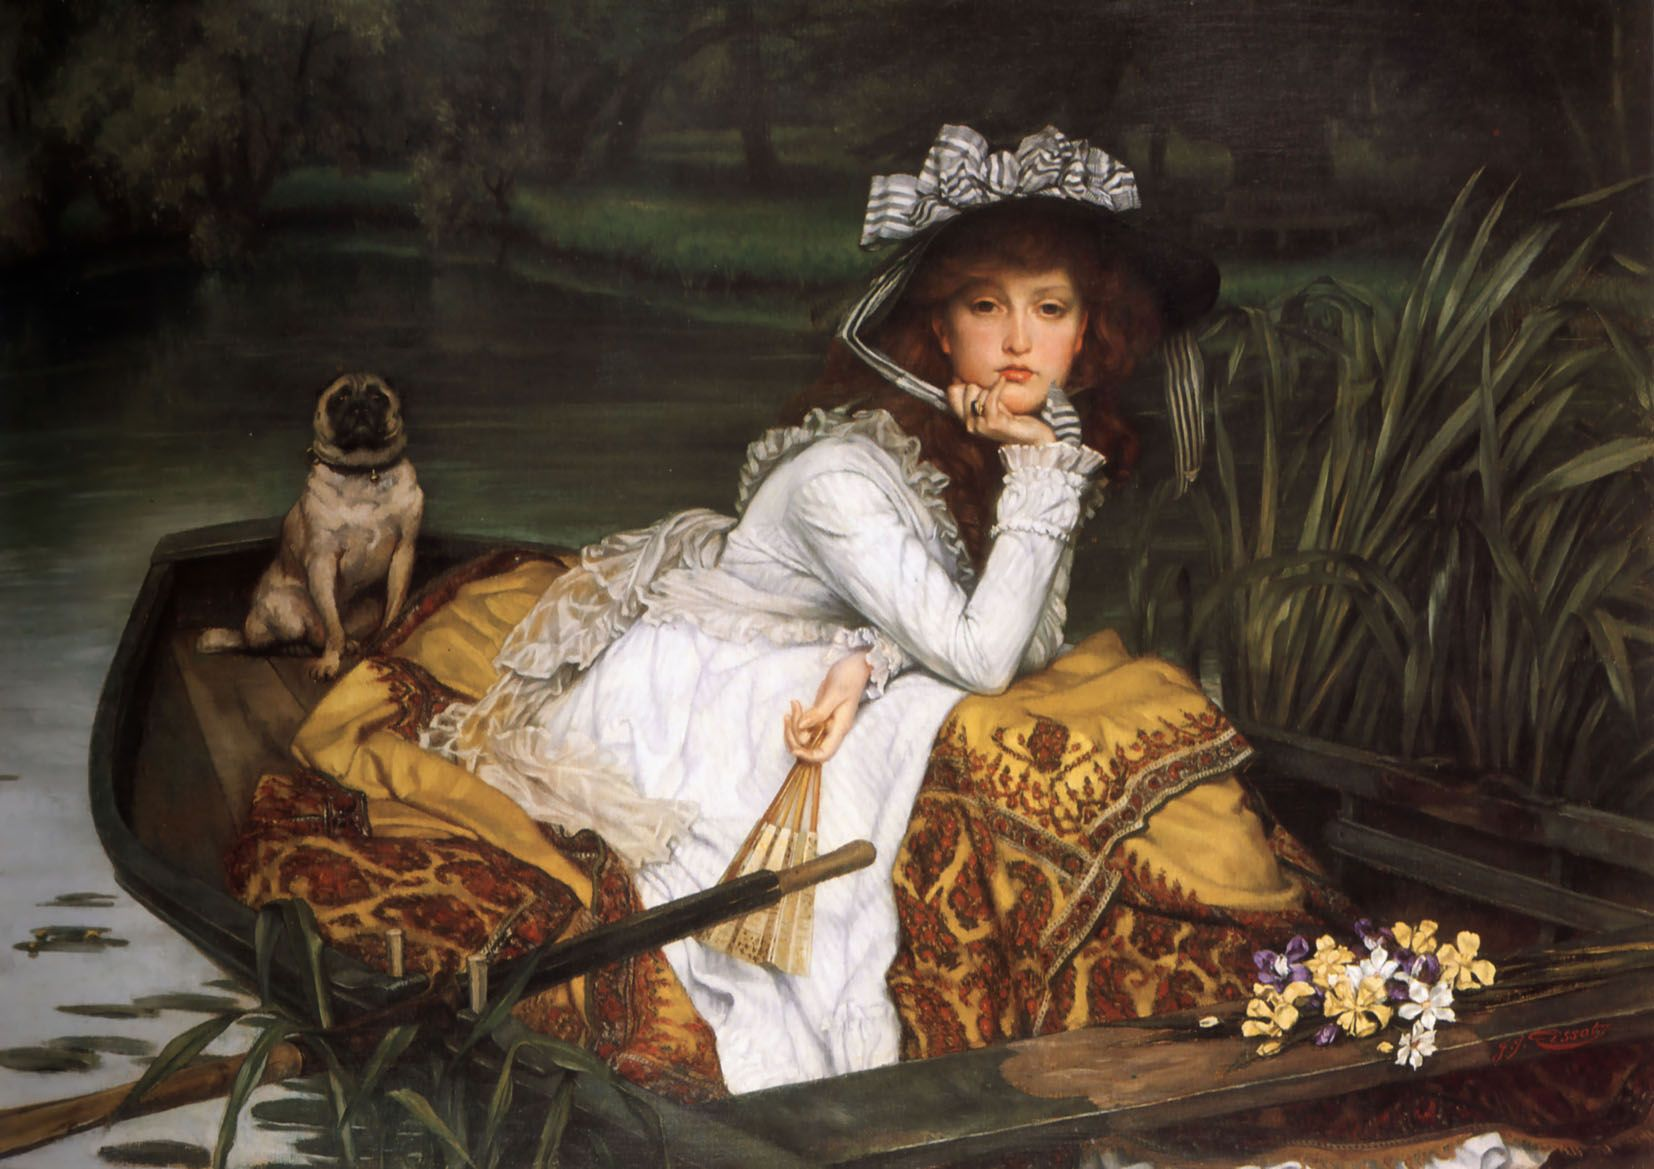 tissot-james-jacques-joseph-young-lady-in-a-boat.-fine-art-print-poster-canvas.-sizes-a3-a2-a1-2678-p.jpg (1654×1169)